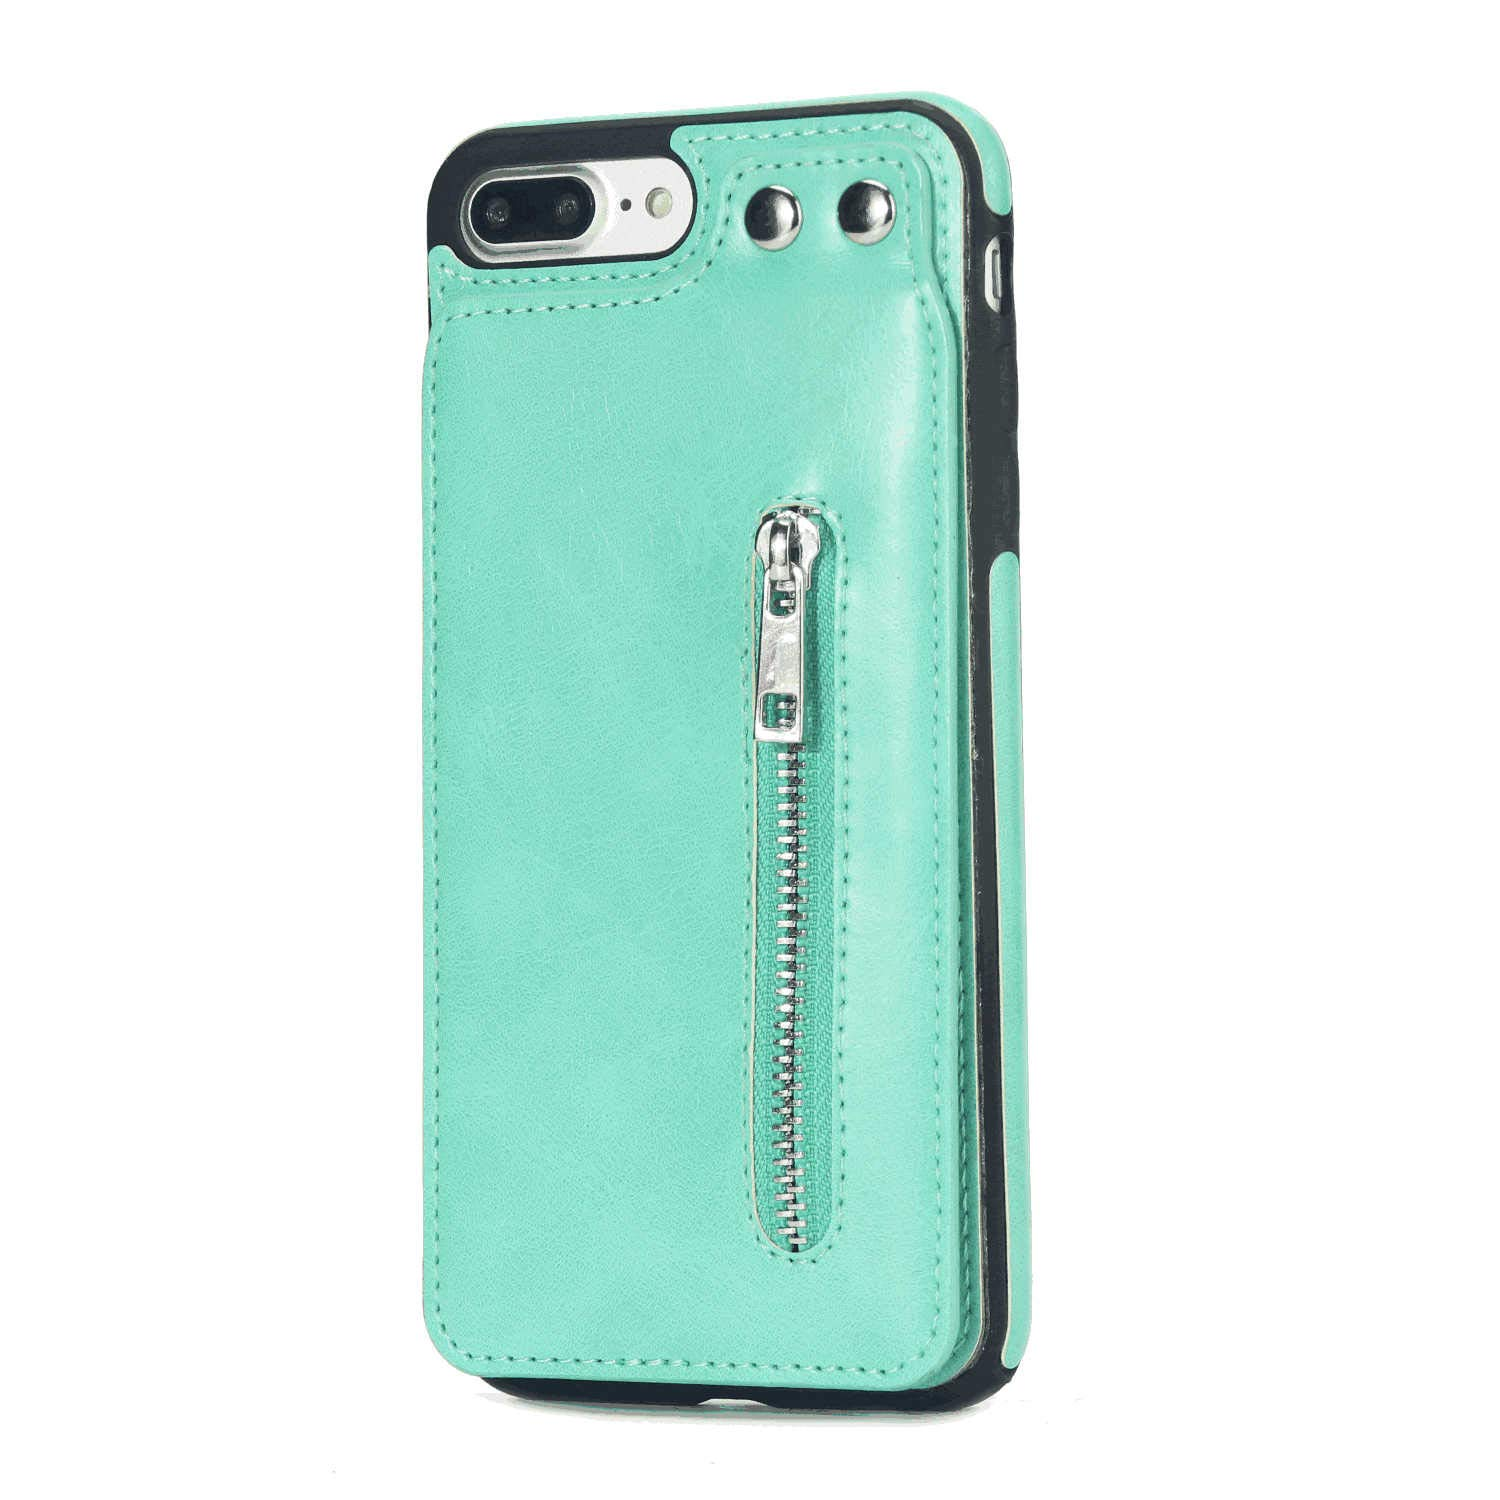 Samsung Galaxy S9 Flip Case, Cover for Leather Kickstand Extra-ShockProof Business Card Holders mobile phone case Flip Cover